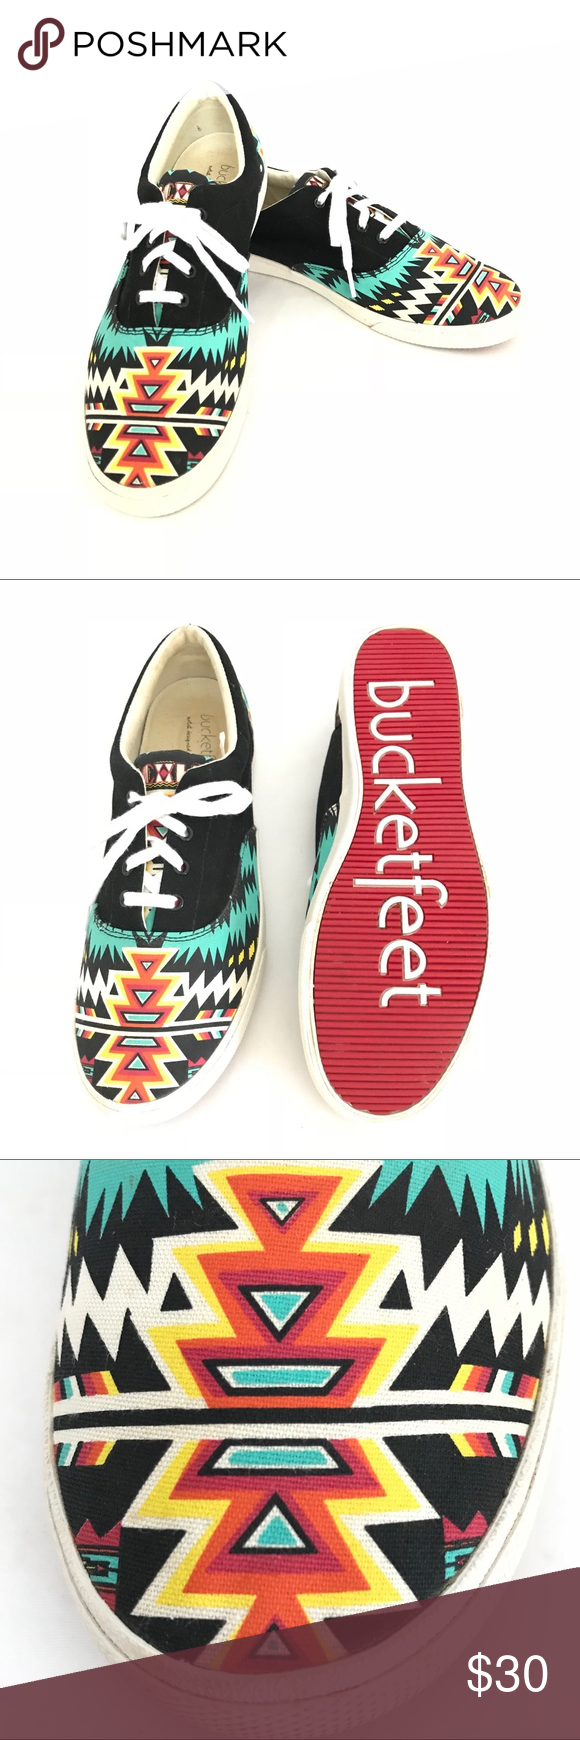 ee977e6d76 👗Bucketfeet Archer Sneaker Tribal Print Size 10 These shoes! They are  made-to